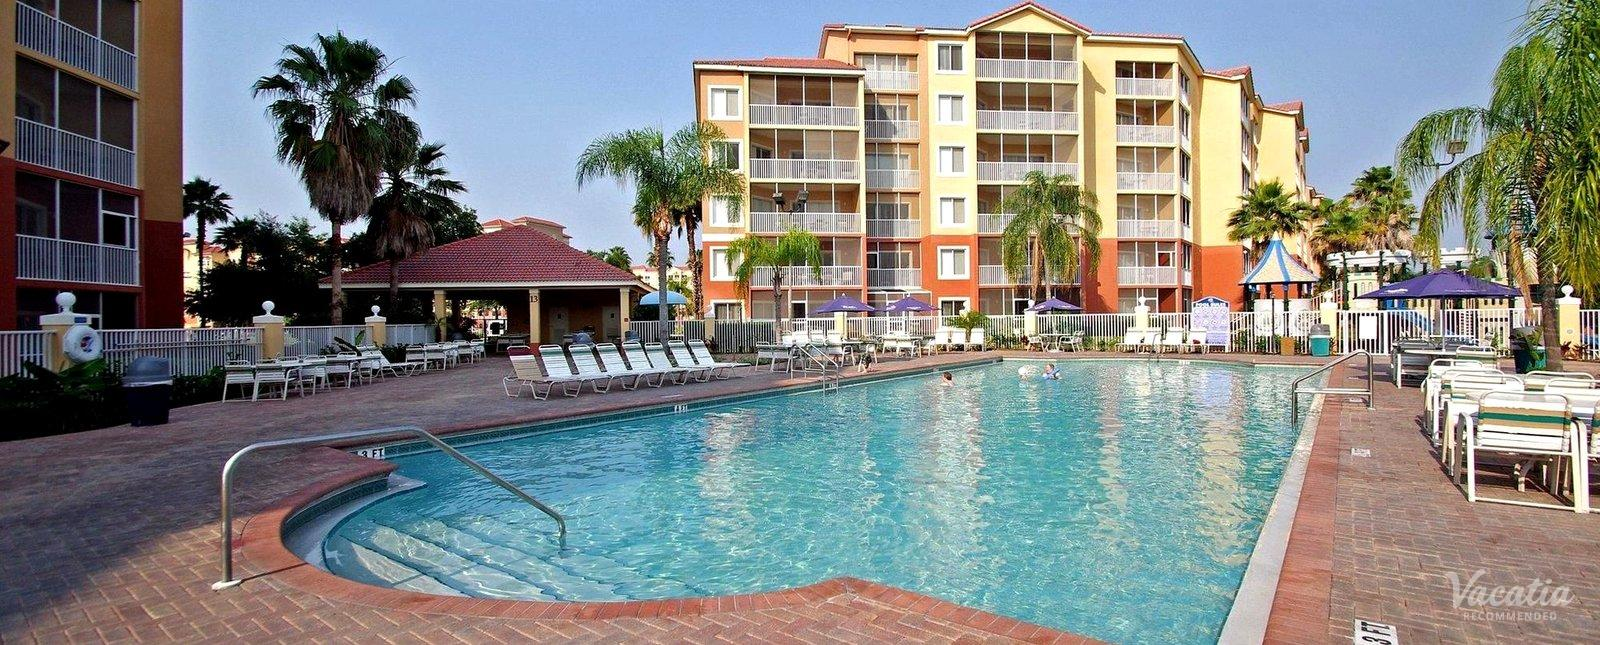 Westgate Vacation Villas Orlando Pool